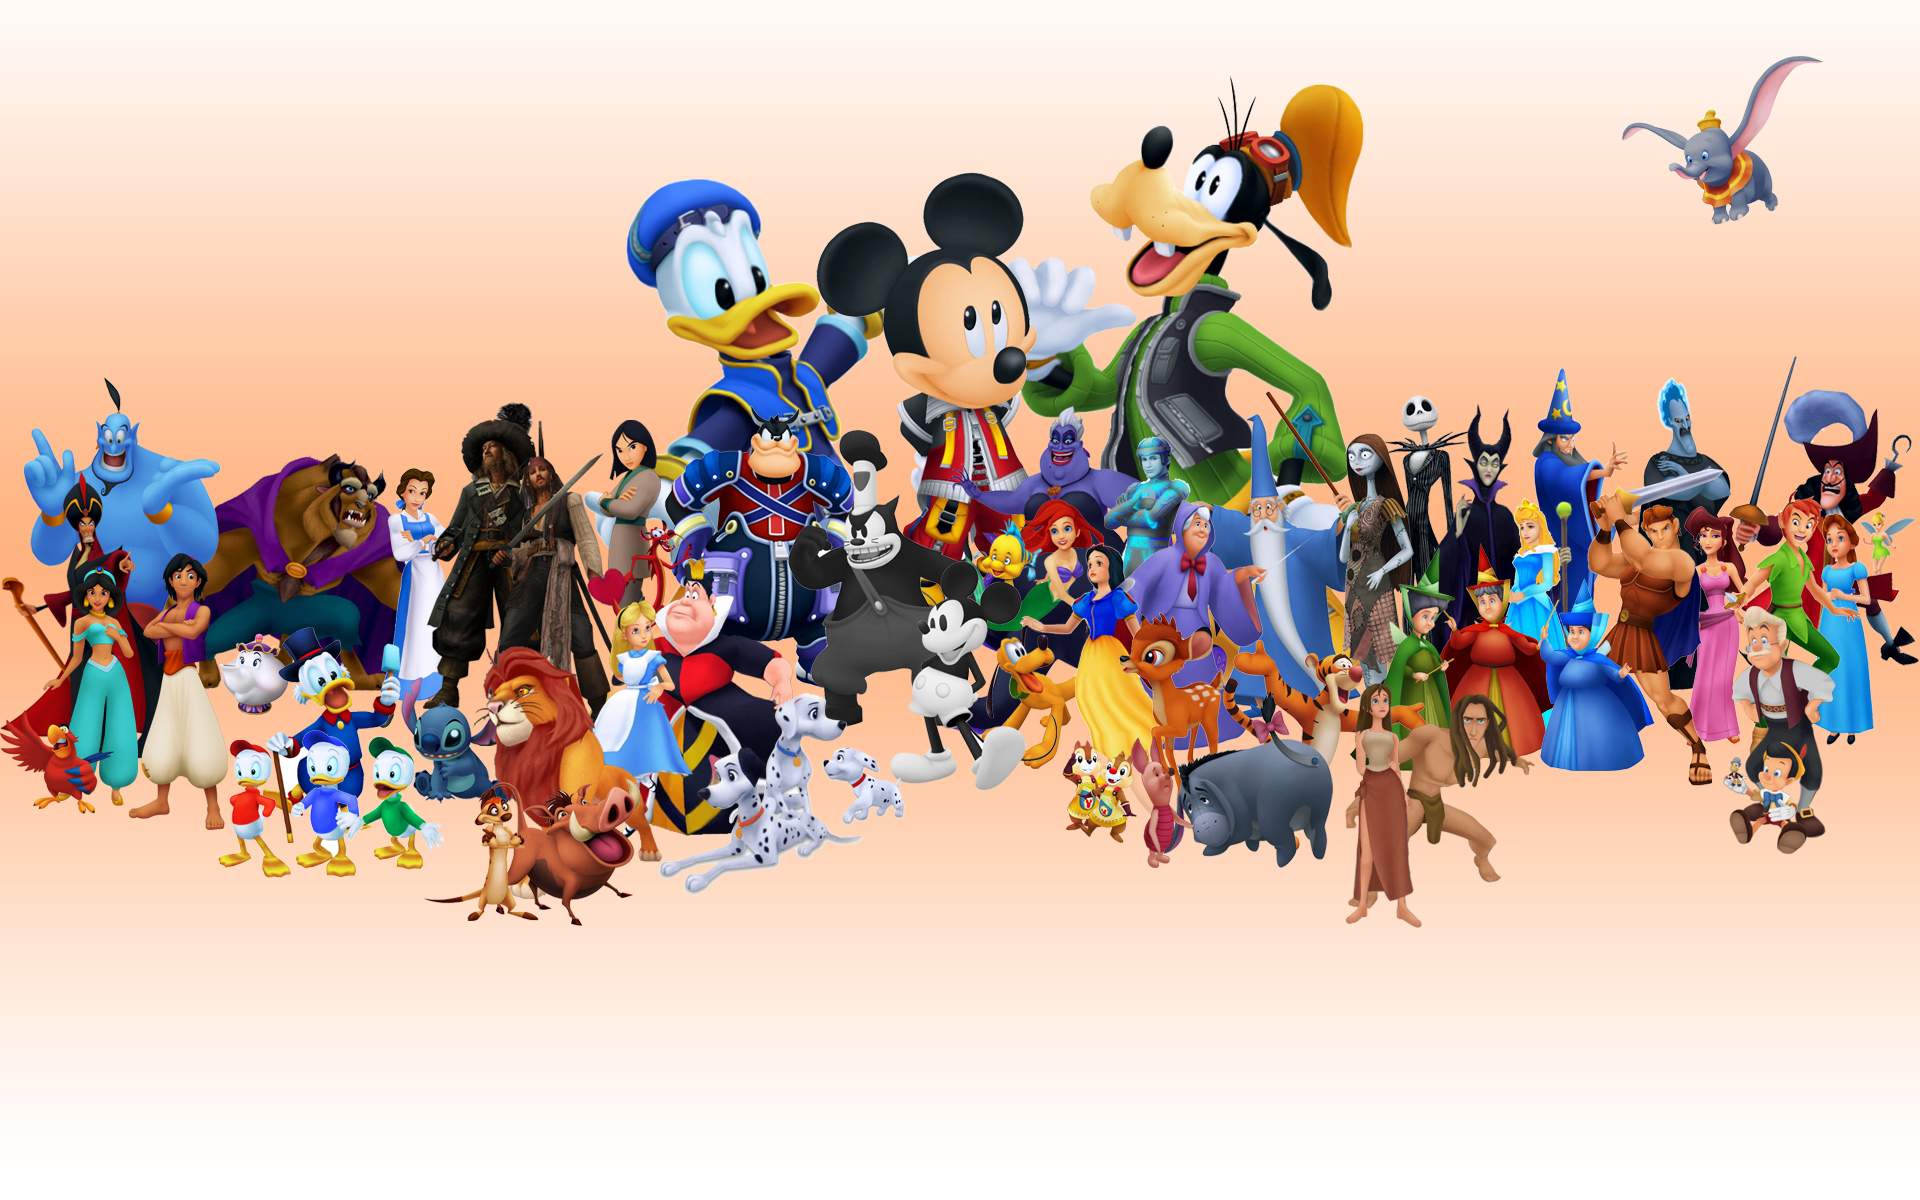 Download Disney Desktop Backgrounds Wallpaper pictures in high 1920x1200